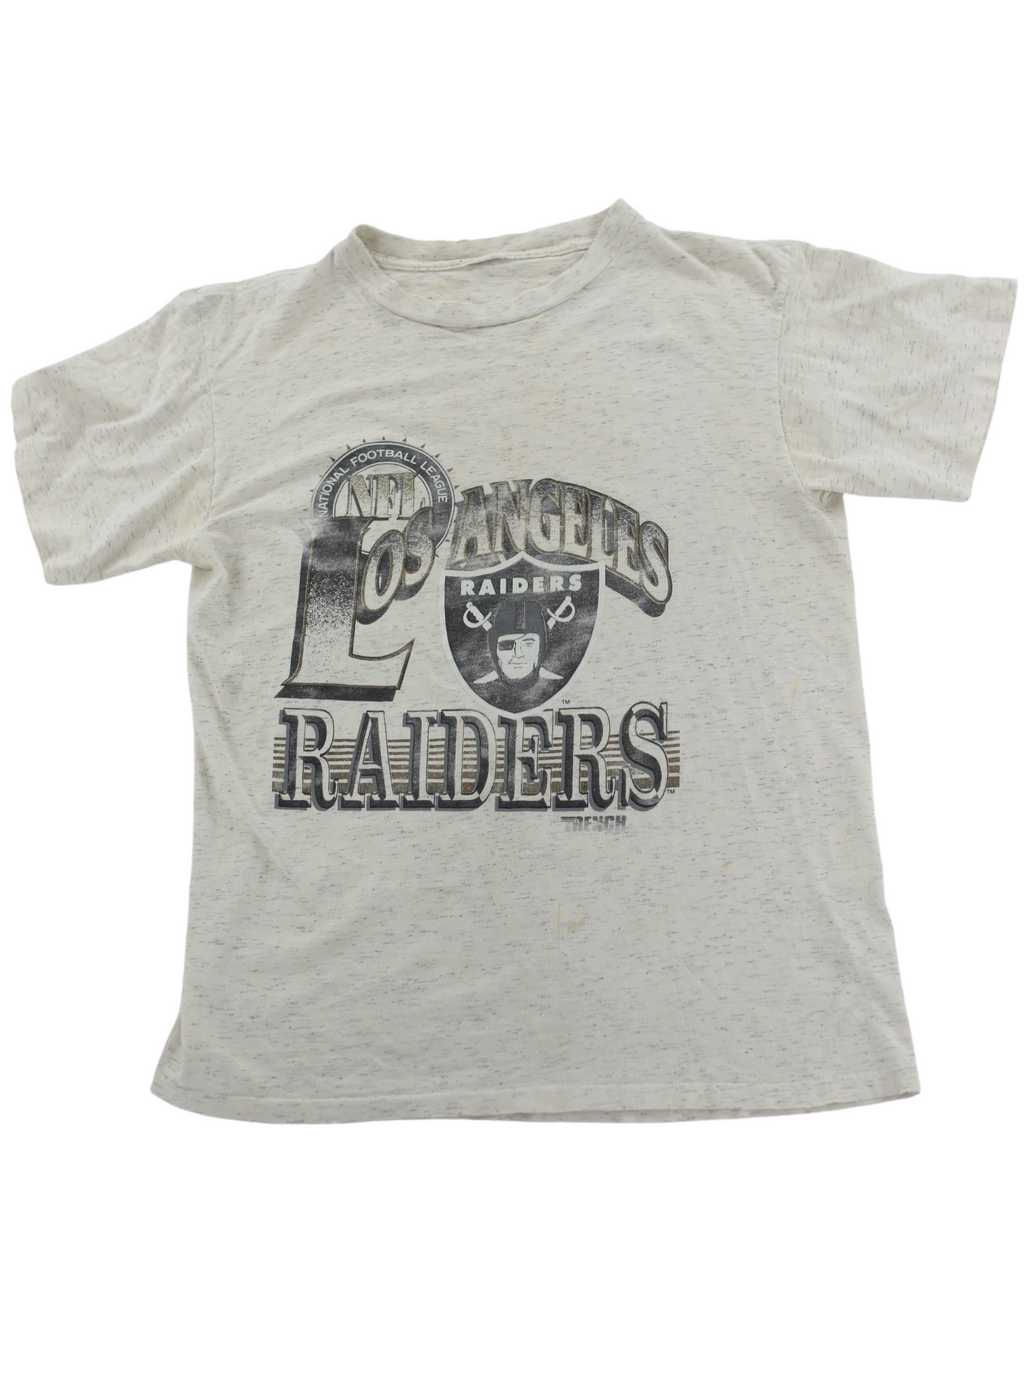 Vintage Los Angeles Raiders Tee